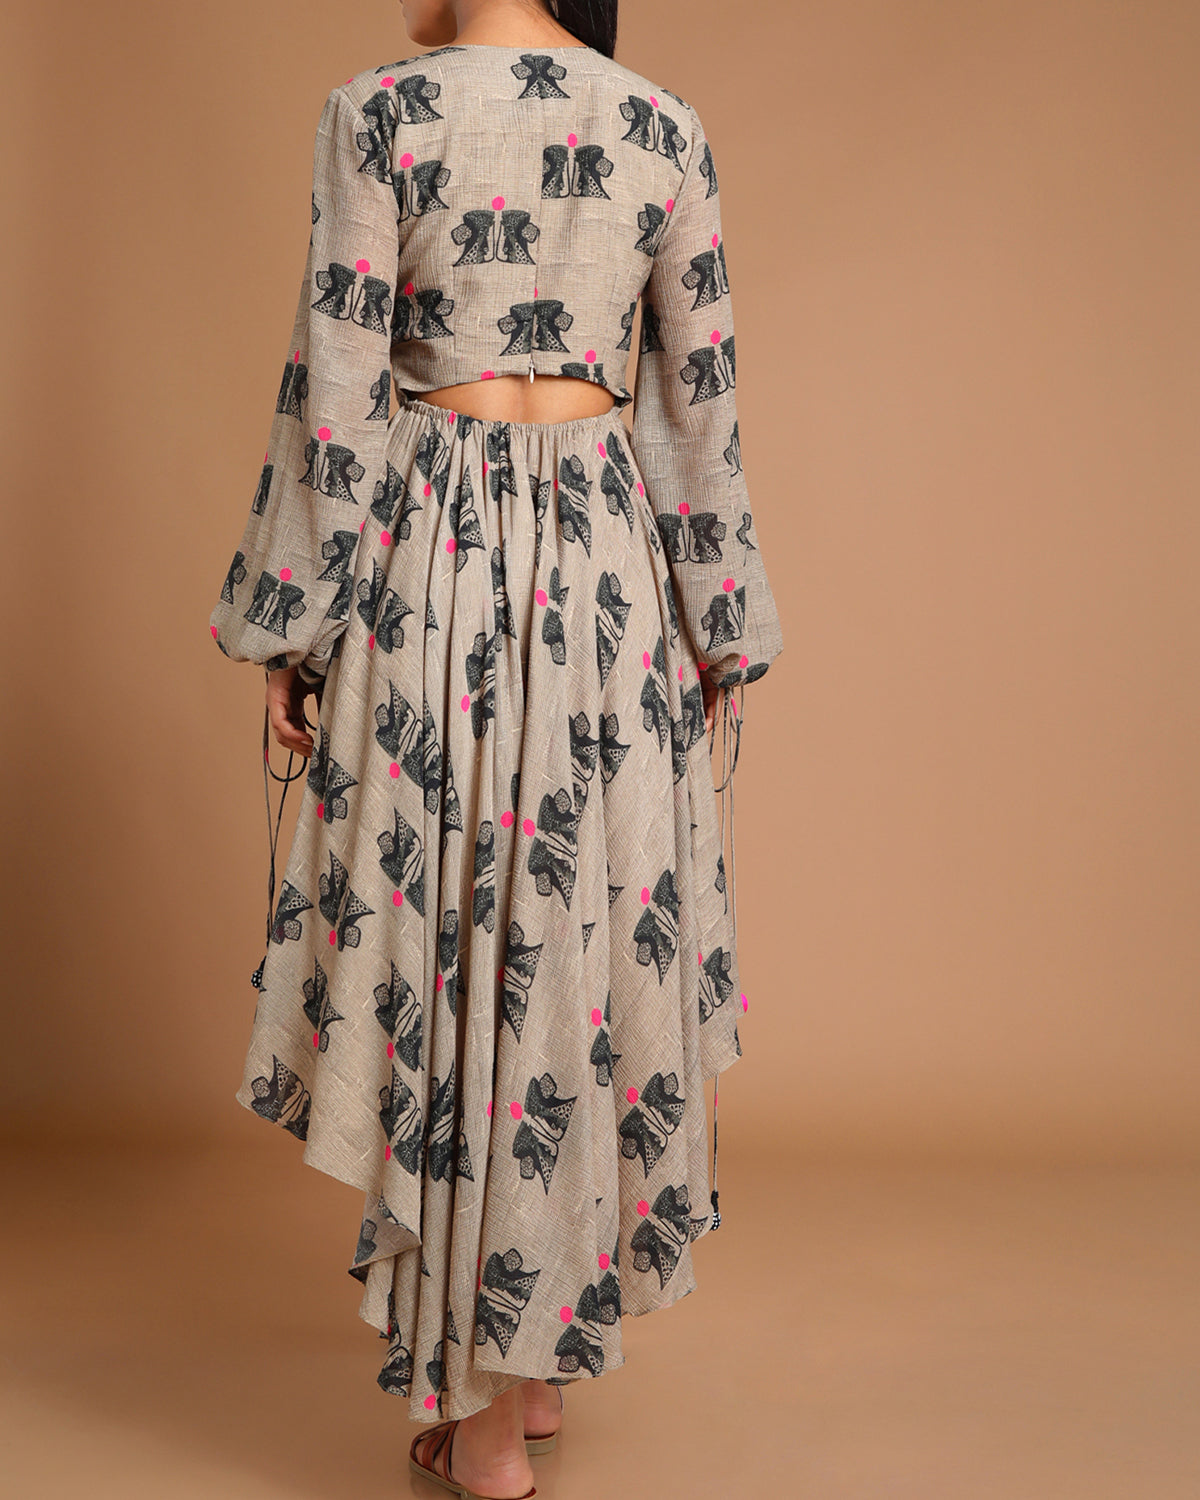 House of Masaba gray dress